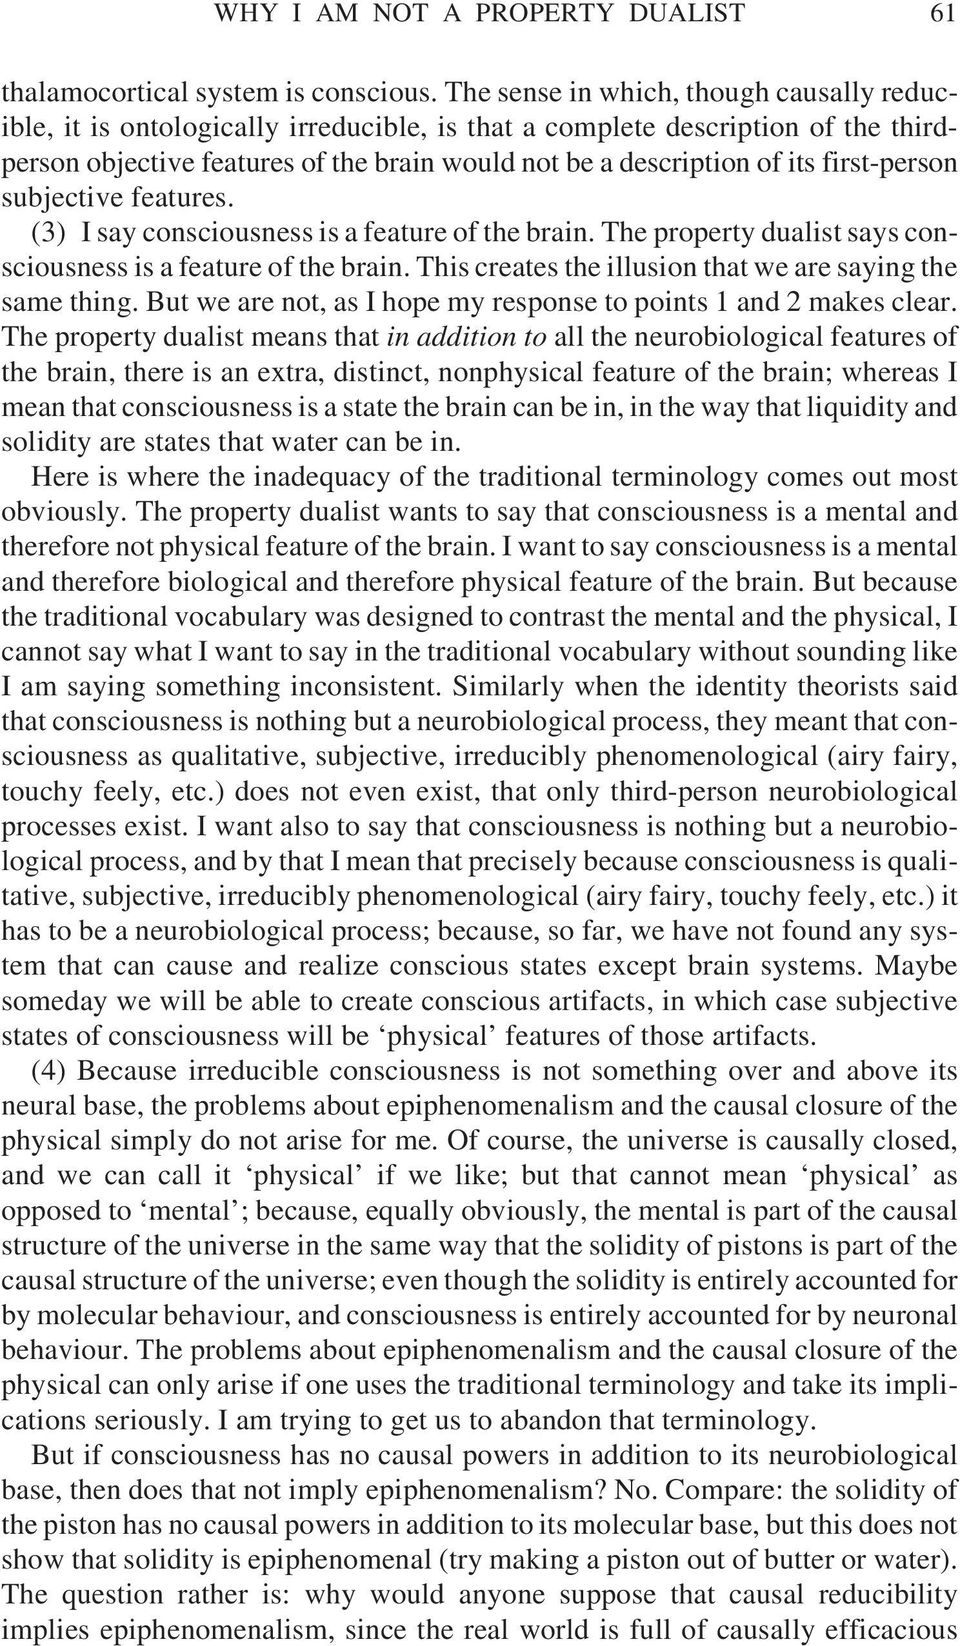 first-person subjective features. (3) I say consciousness is a feature of the brain. The property dualist says consciousness is a feature of the brain.